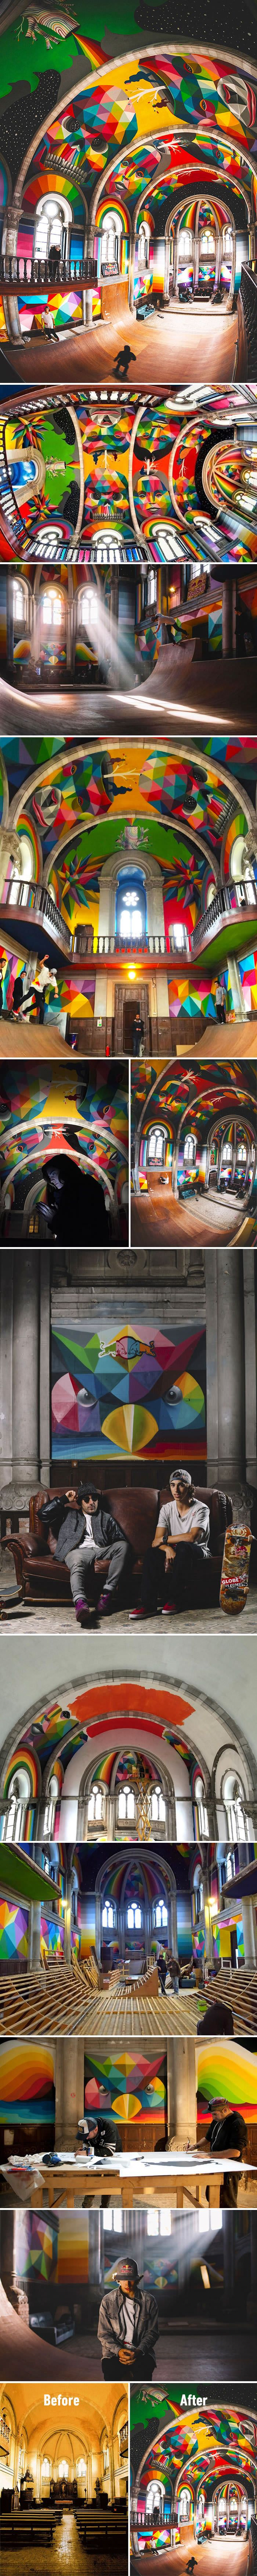 Artists Transformed A 100-Year-Old Church Into A Skate Park With Colorful…